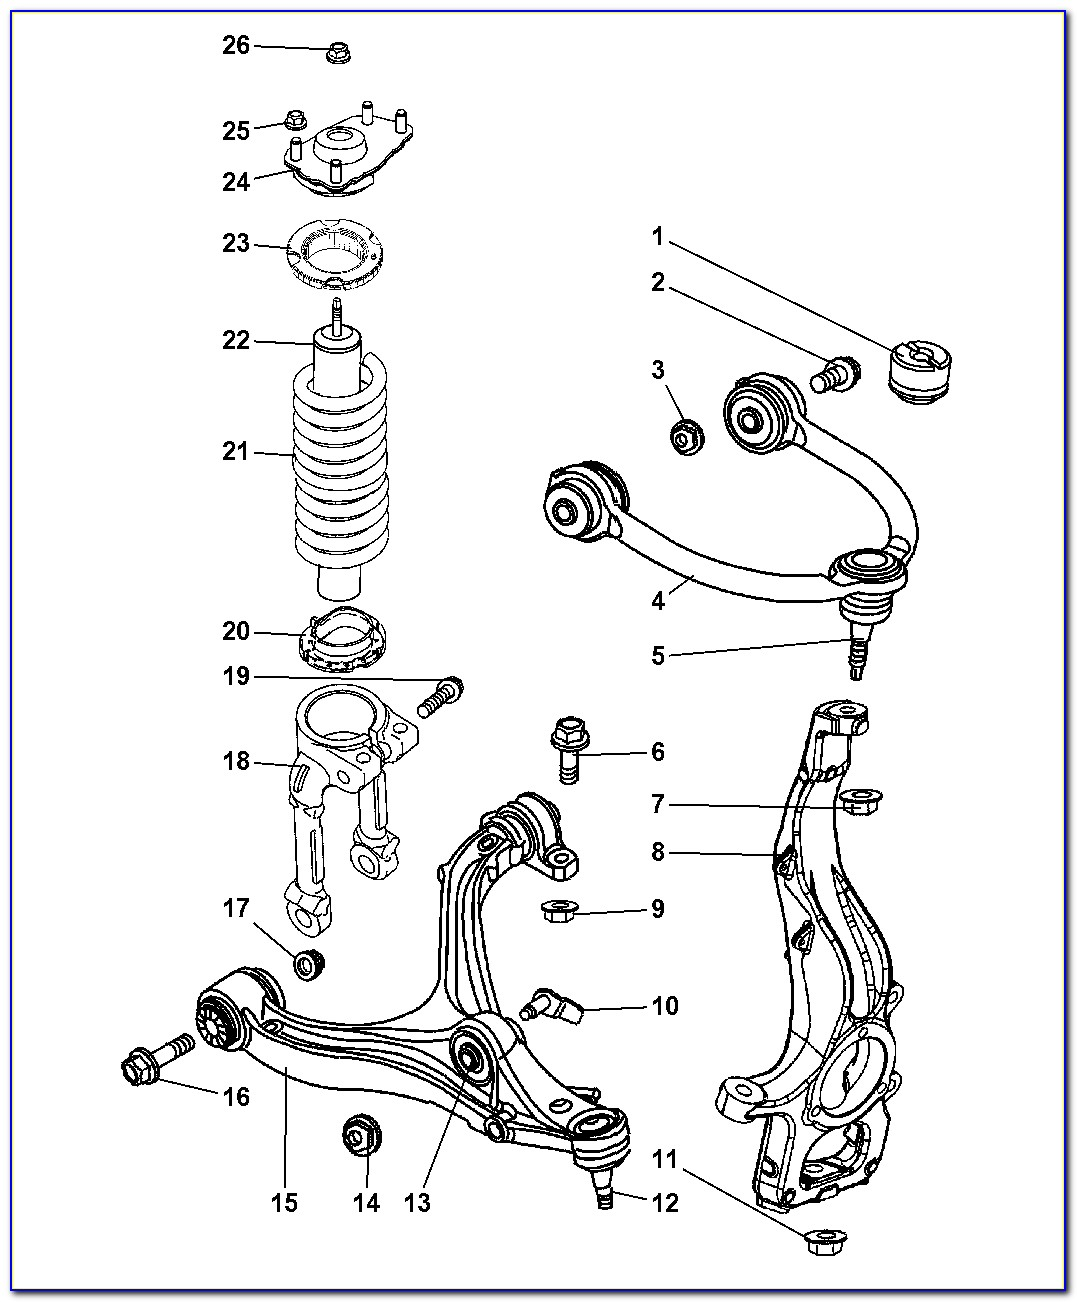 2005 Jeep Grand Cherokee Front Suspension Diagram